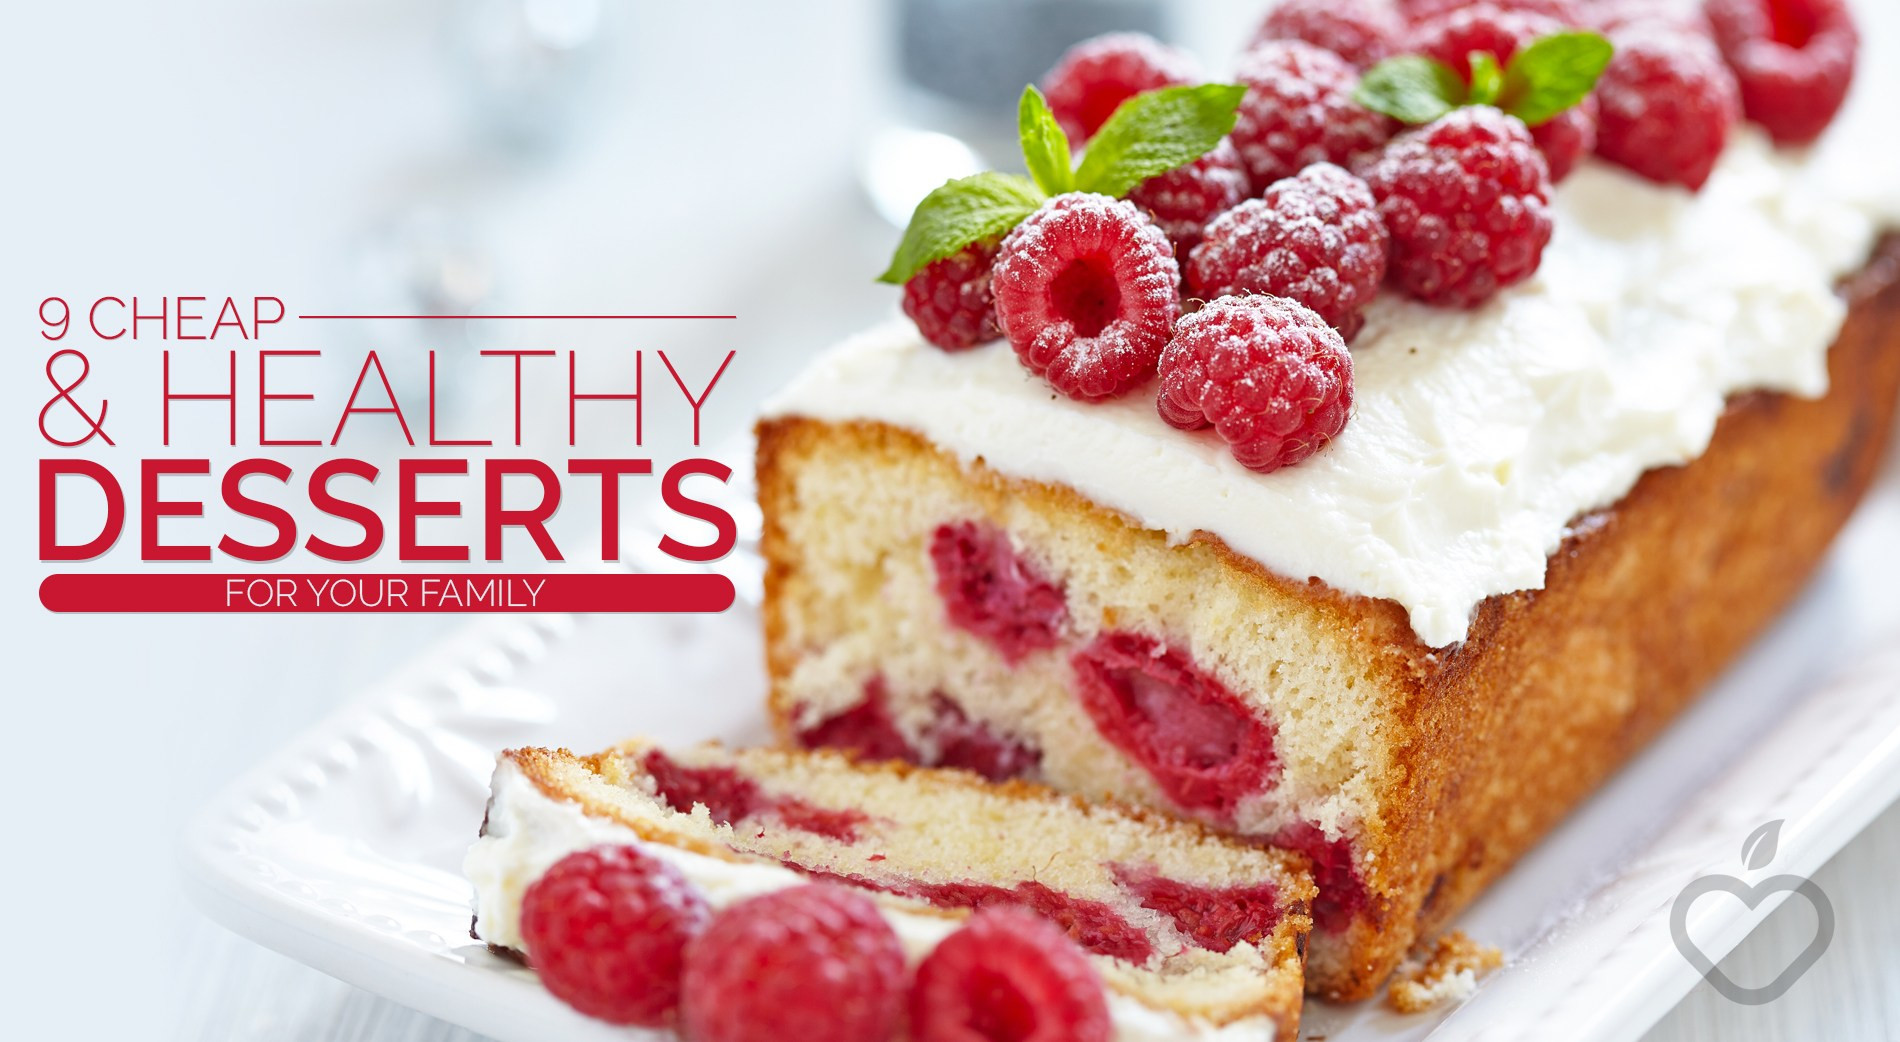 Healthy Desserts Nyc  9 Cheap And Healthy Desserts For Your Family ⋆ New York